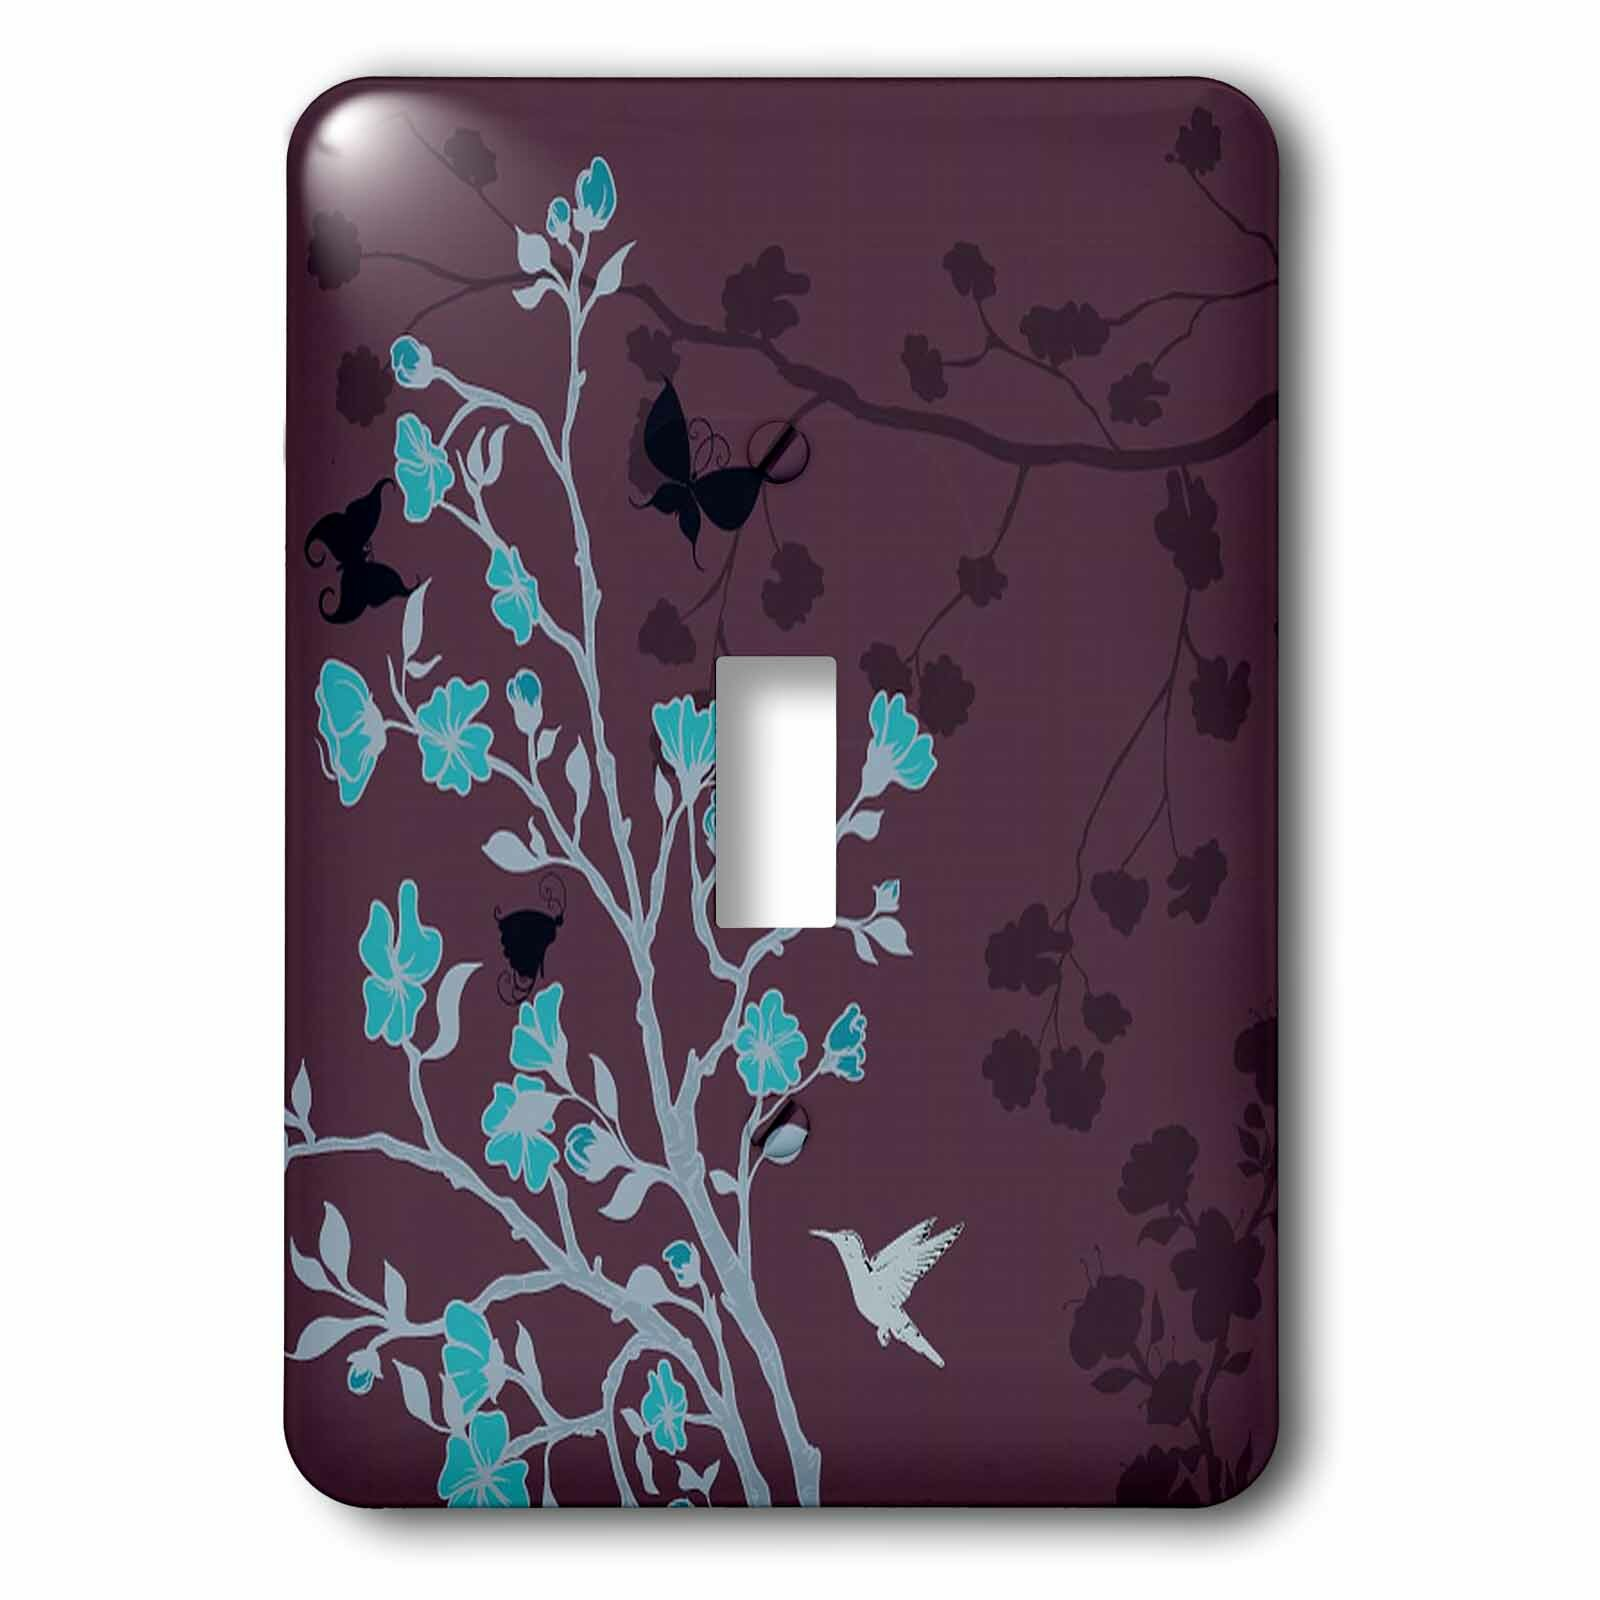 3drose Bright Cherry Blossoms With Hummingbirds Against 1 Gang Toggle Light Switch Wall Plate Wayfair